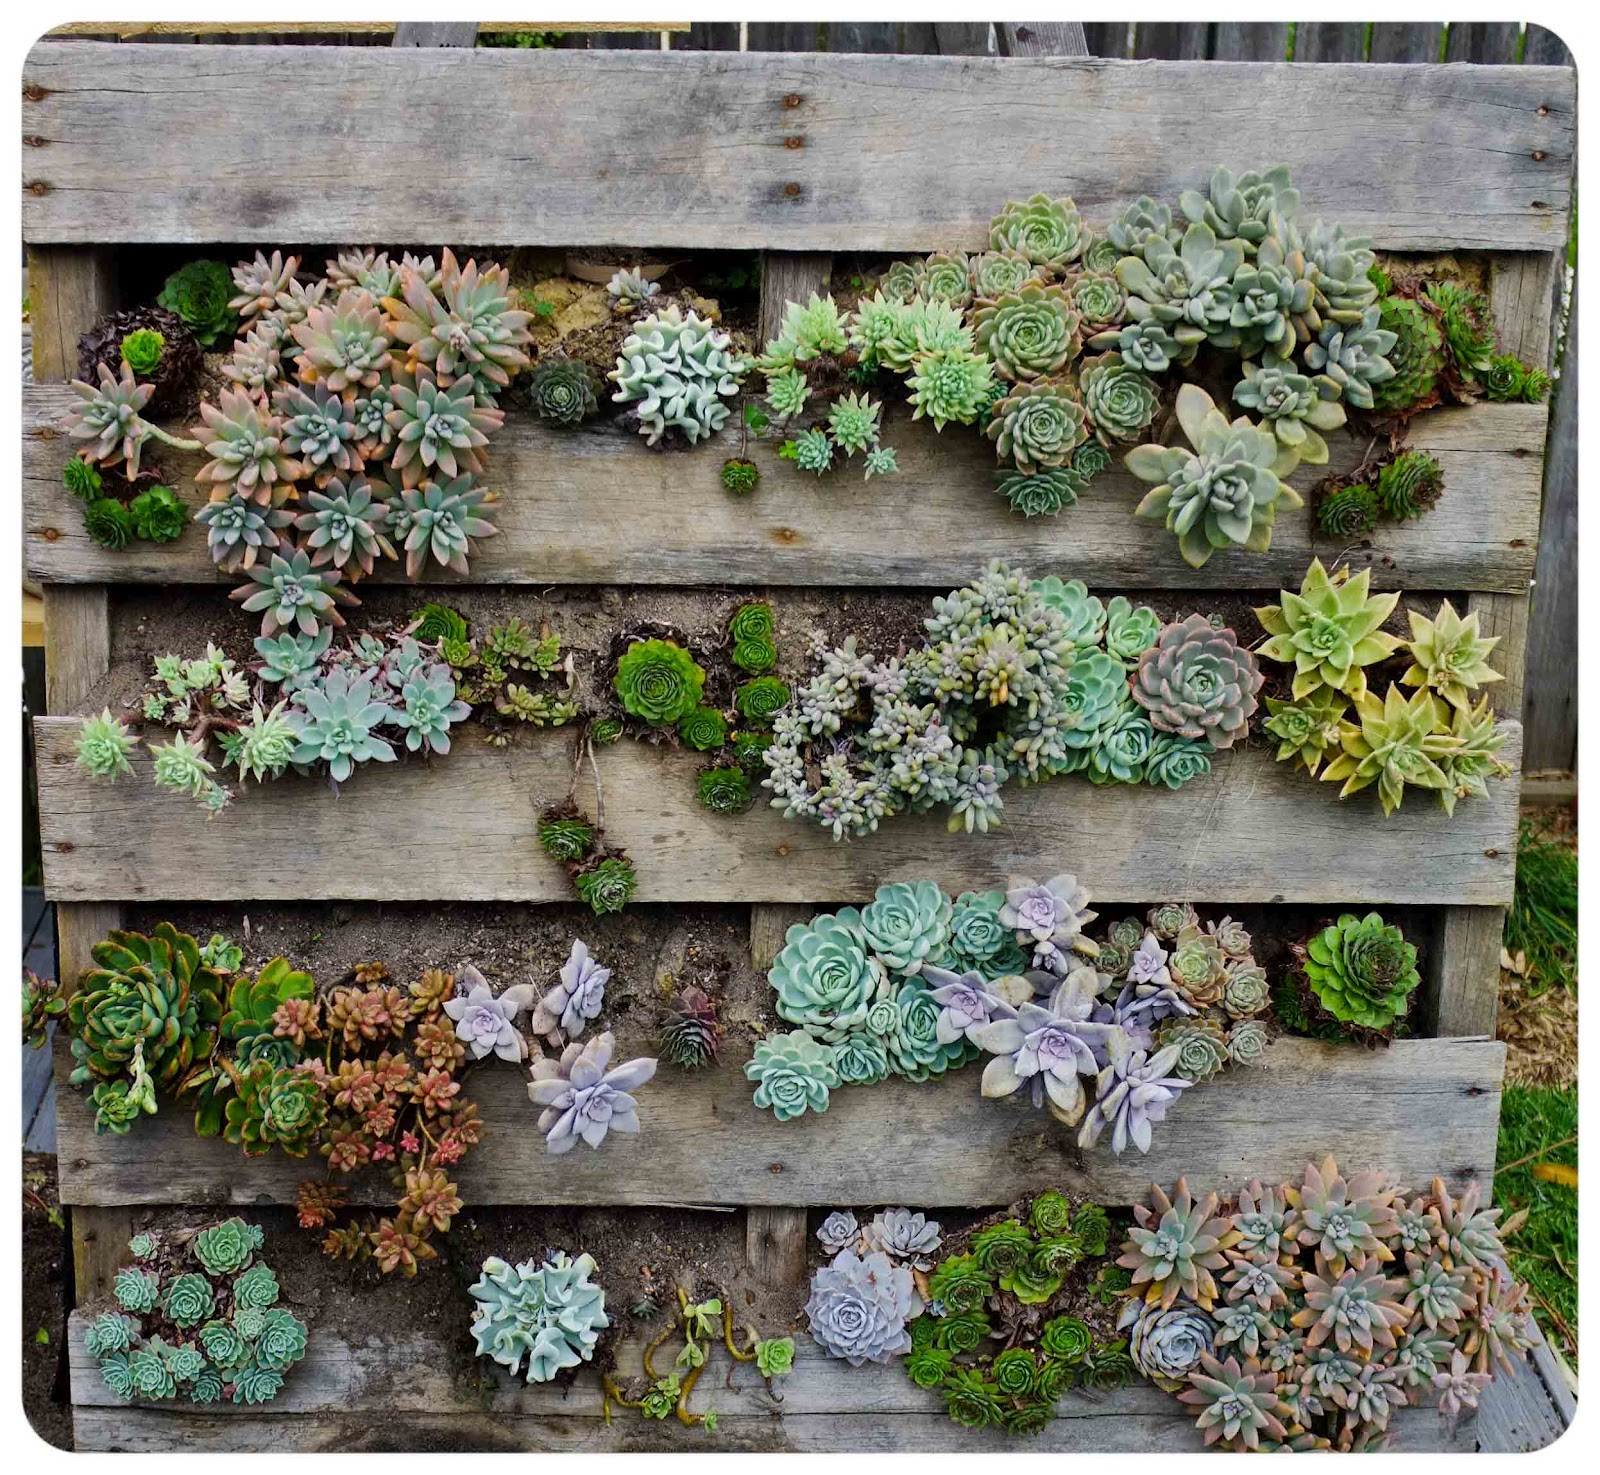 The Urchin Collective: DIY Recycled Pallet Vertical